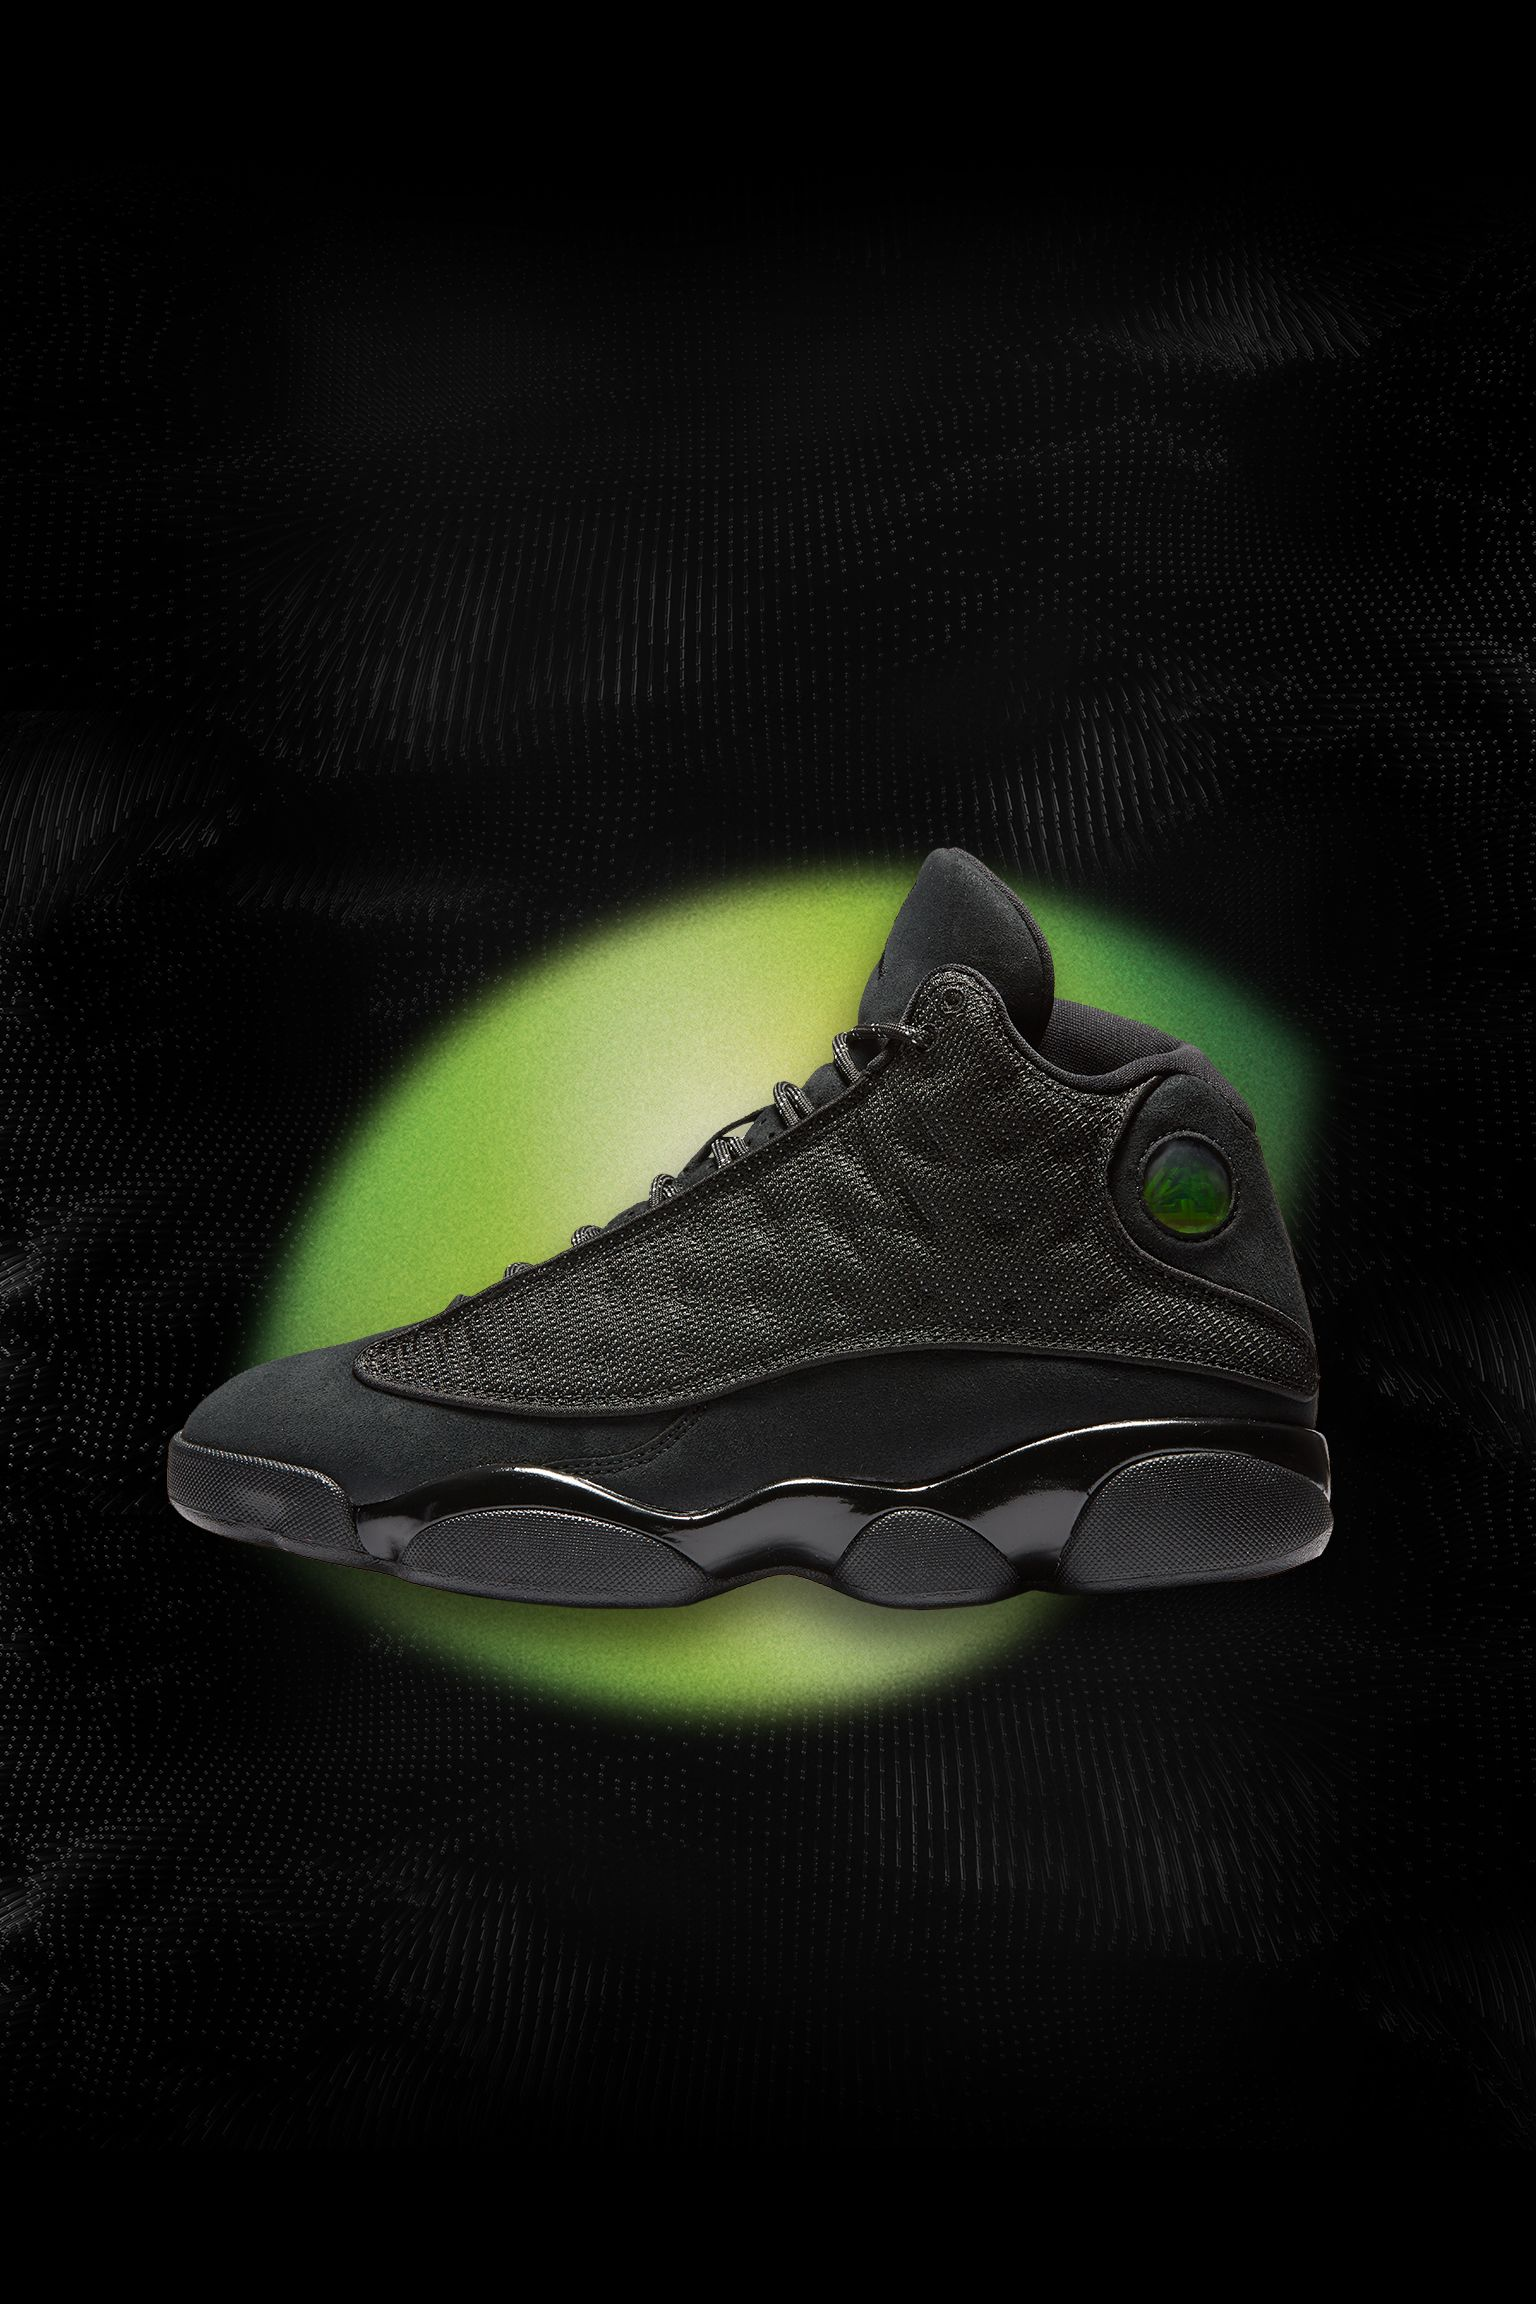 Retro 13 Black Fr « Air Cat Jordan »Nike⁠Launch dCxBeroWQ